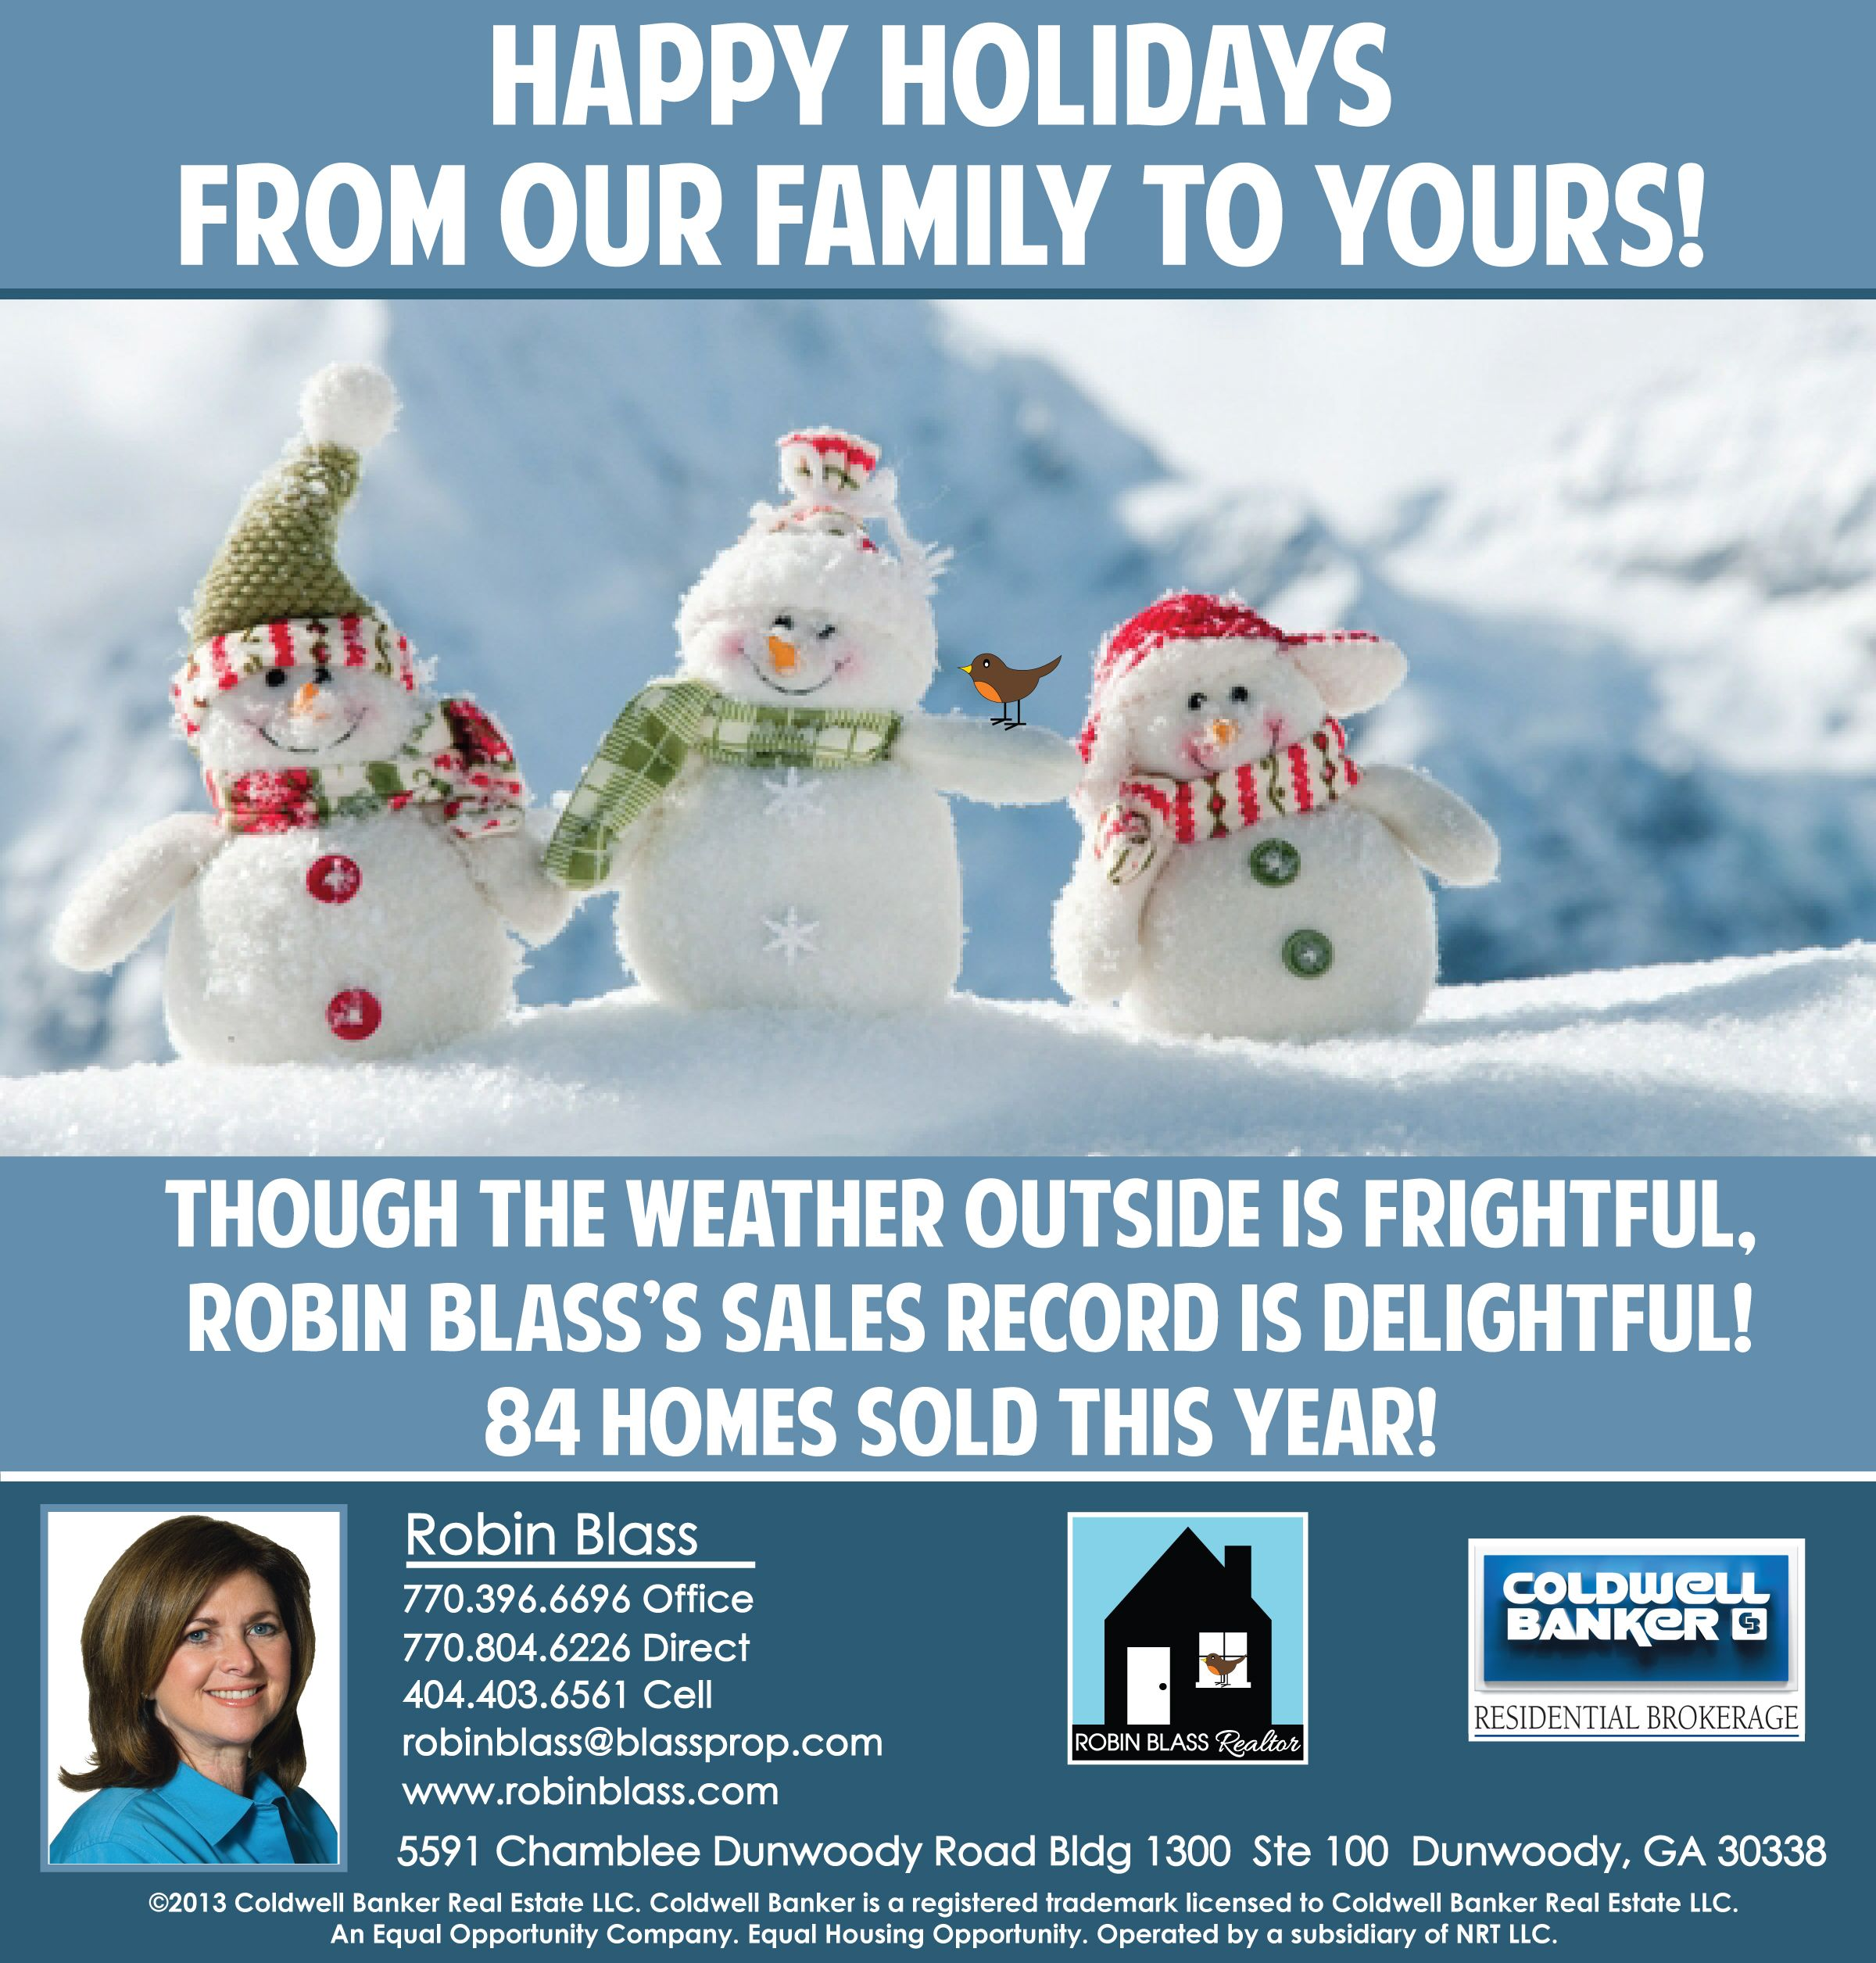 Get Everything You Need Starting At 5 Fiverr Real Estate Holiday Cards Real Estate Postcards Real Estate Advertising